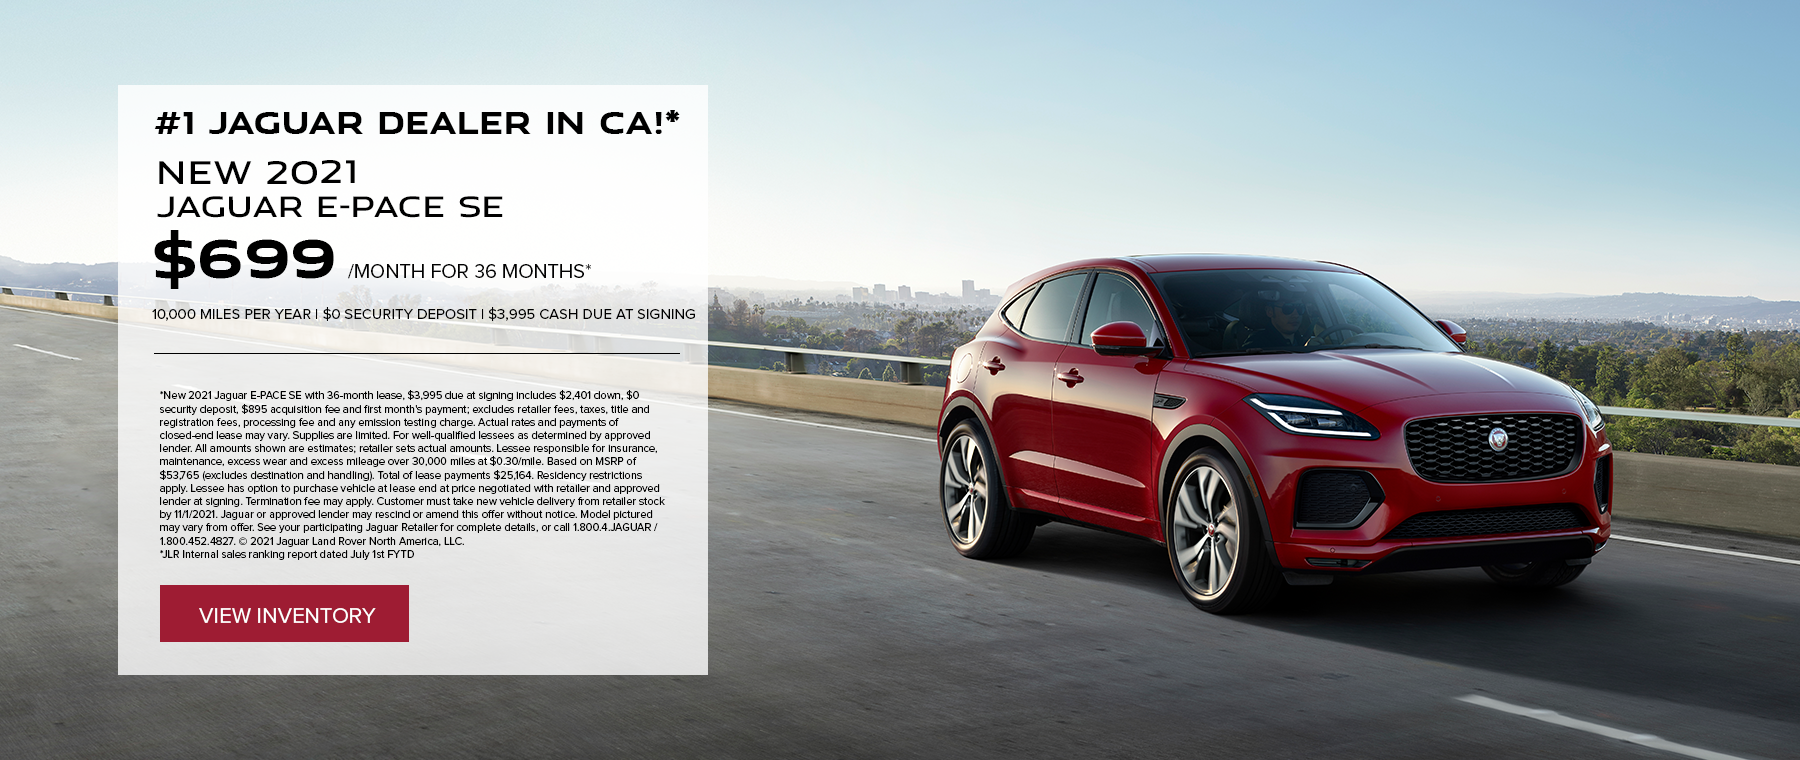 NEW 2021 JAGUAR E-PACE SE. $699 PER MONTH. 36 MONTH LEASE TERM. $3,995 CASH DUE AT SIGNING. $0 SECURITY DEPOSIT. 10,000 MILES PER YEAR. EXCLUDES RETAILER FEES, TAXES, TITLE AND REGISTRATION FEES, PROCESSING FEE AND ANY EMISSION TESTING CHARGE. OFFER ENDS 11/1/2021.